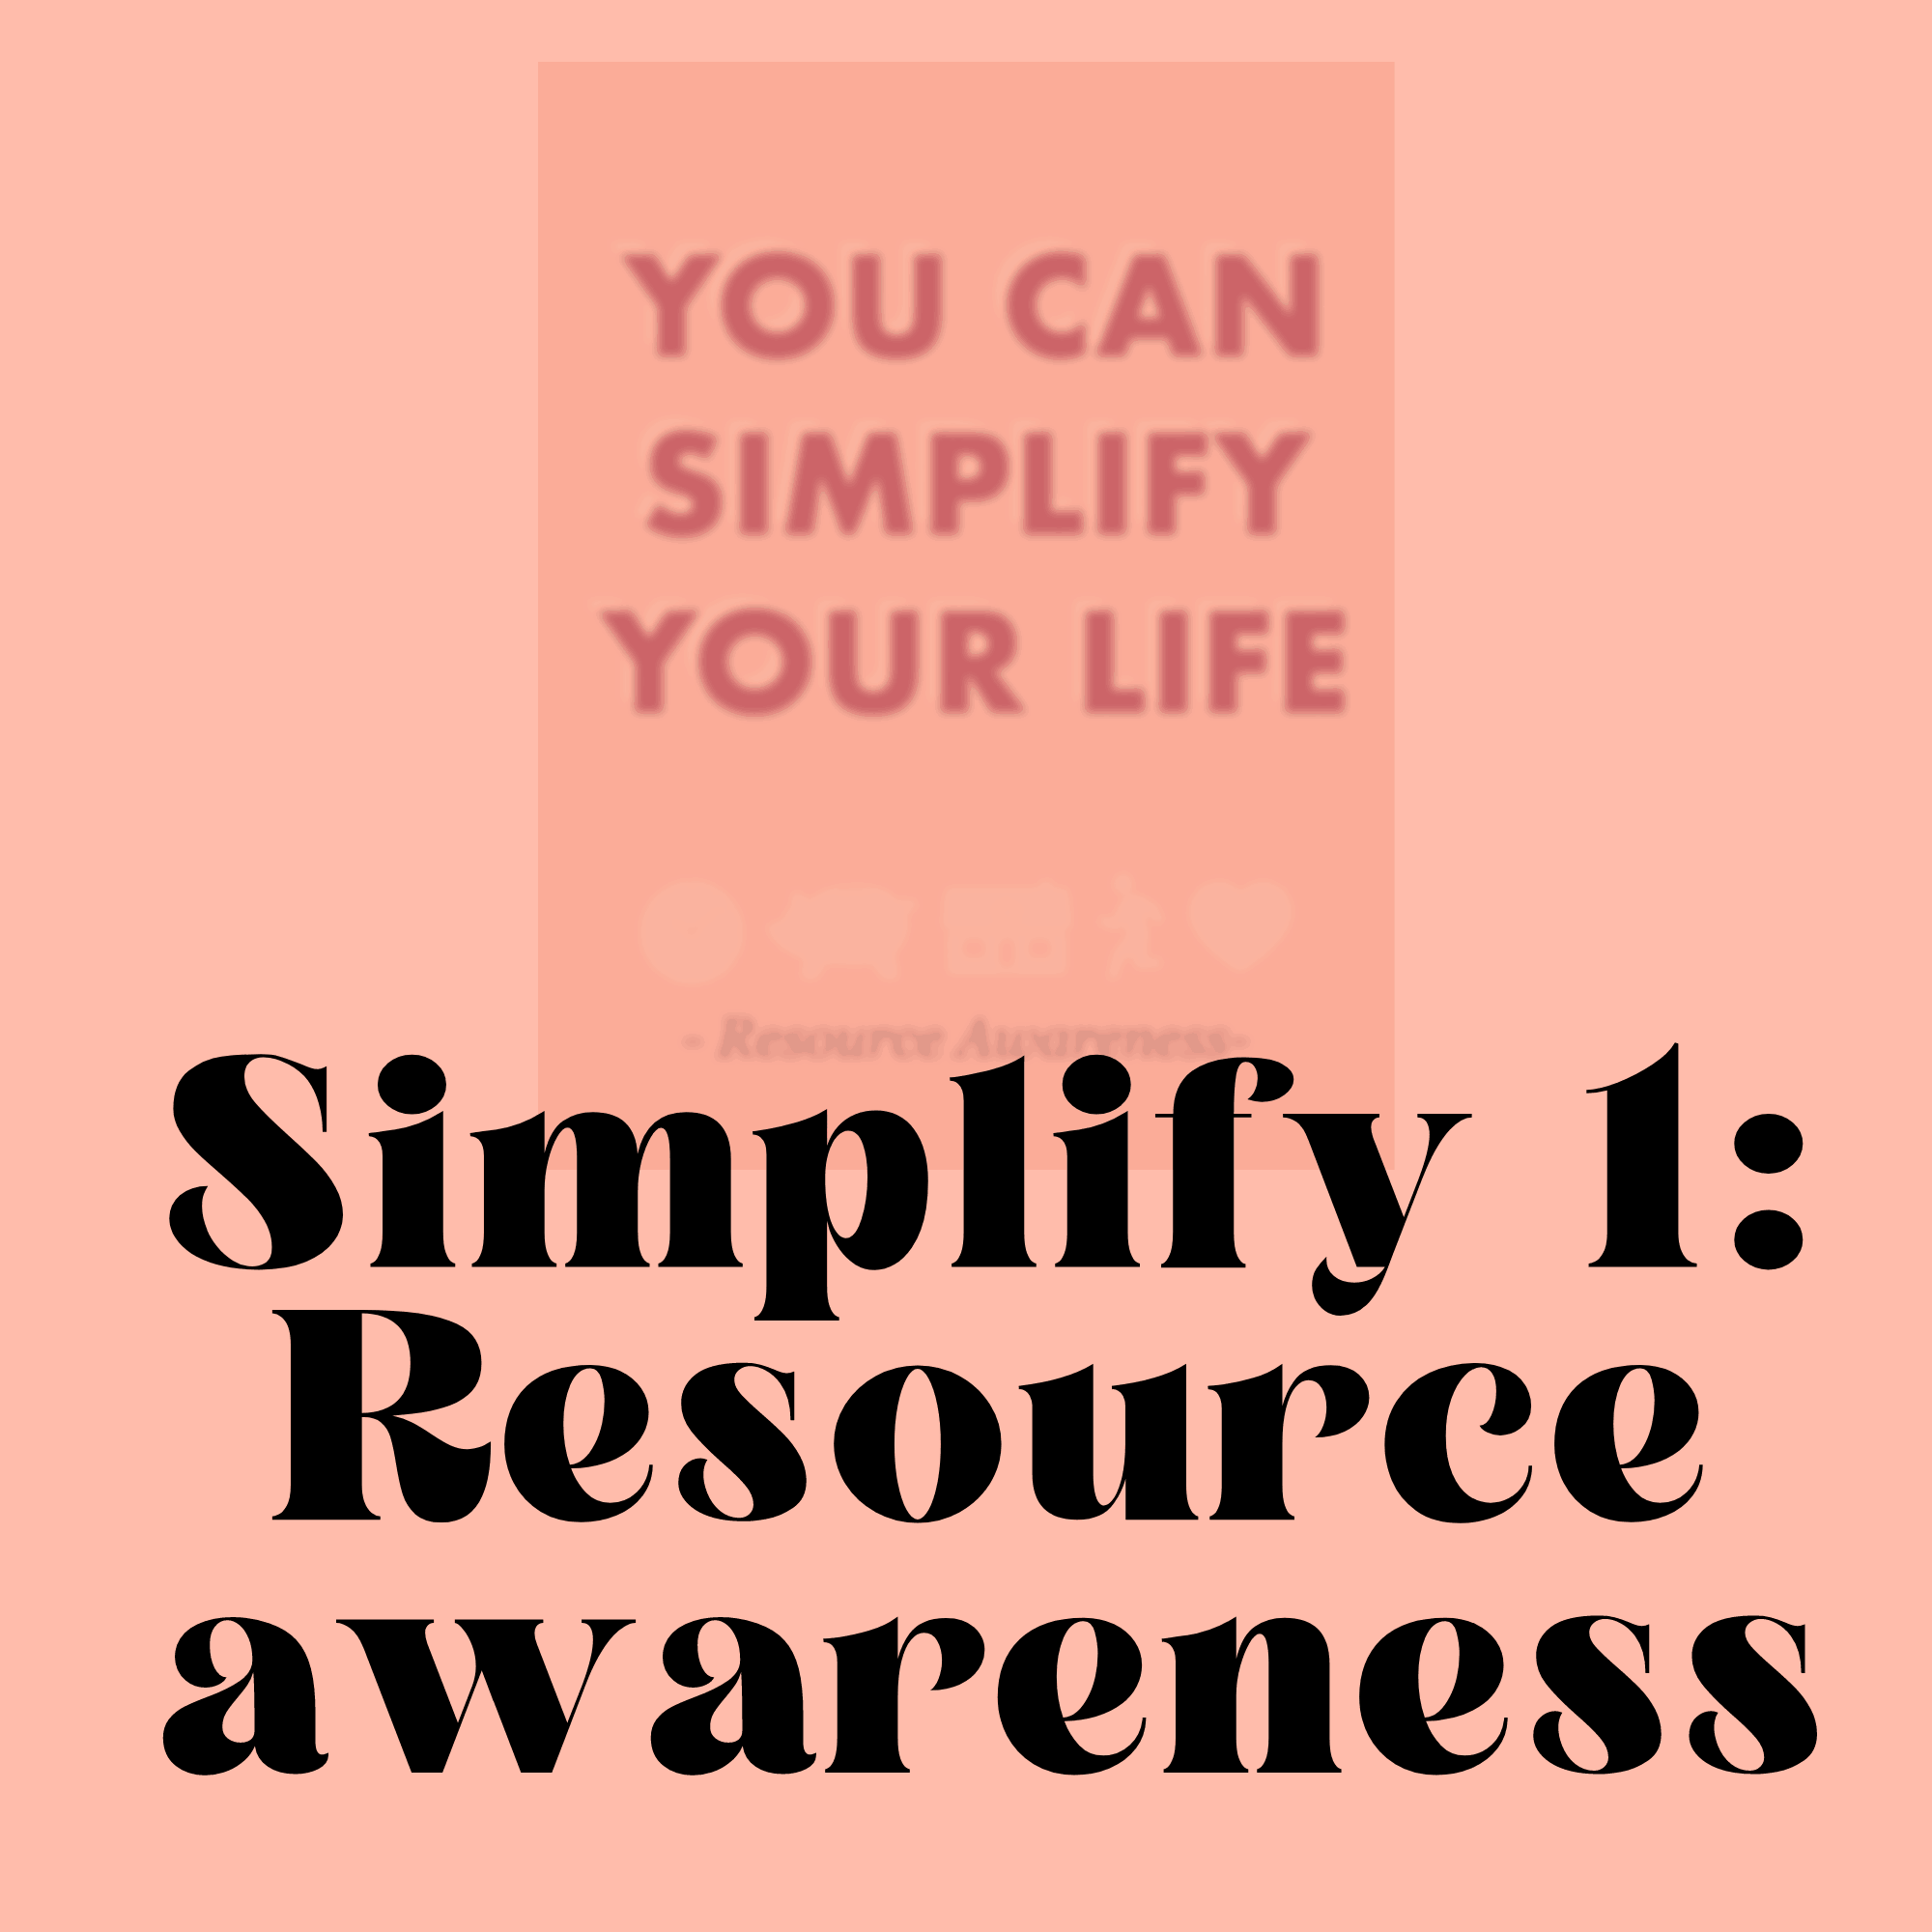 Simplify Your Life 1 Worksheet Simple On Purpose